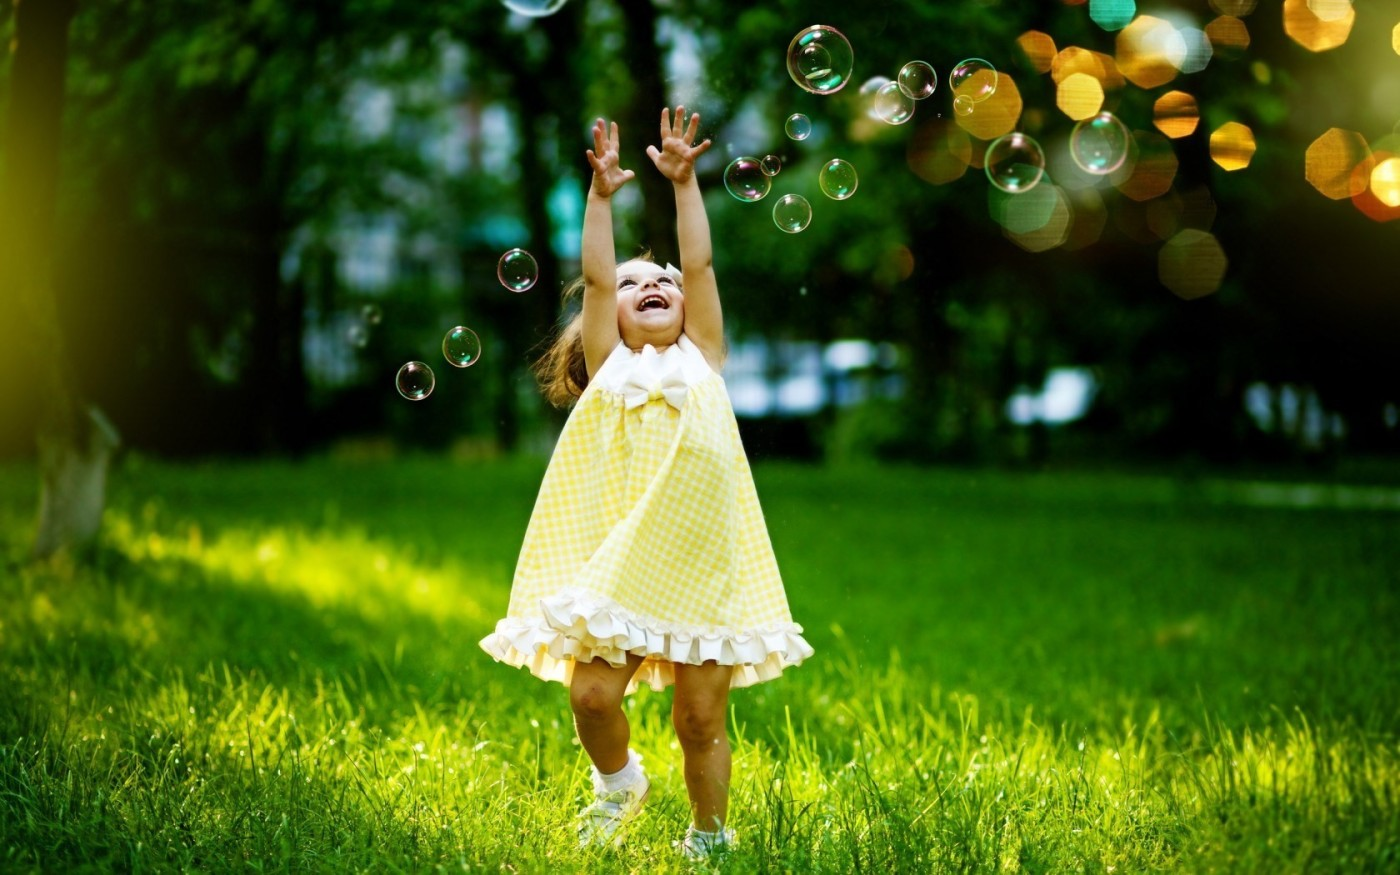 happiness-grass-bubbles-bokeh-trees-little-girl-nature-green-1680x1050.jpg